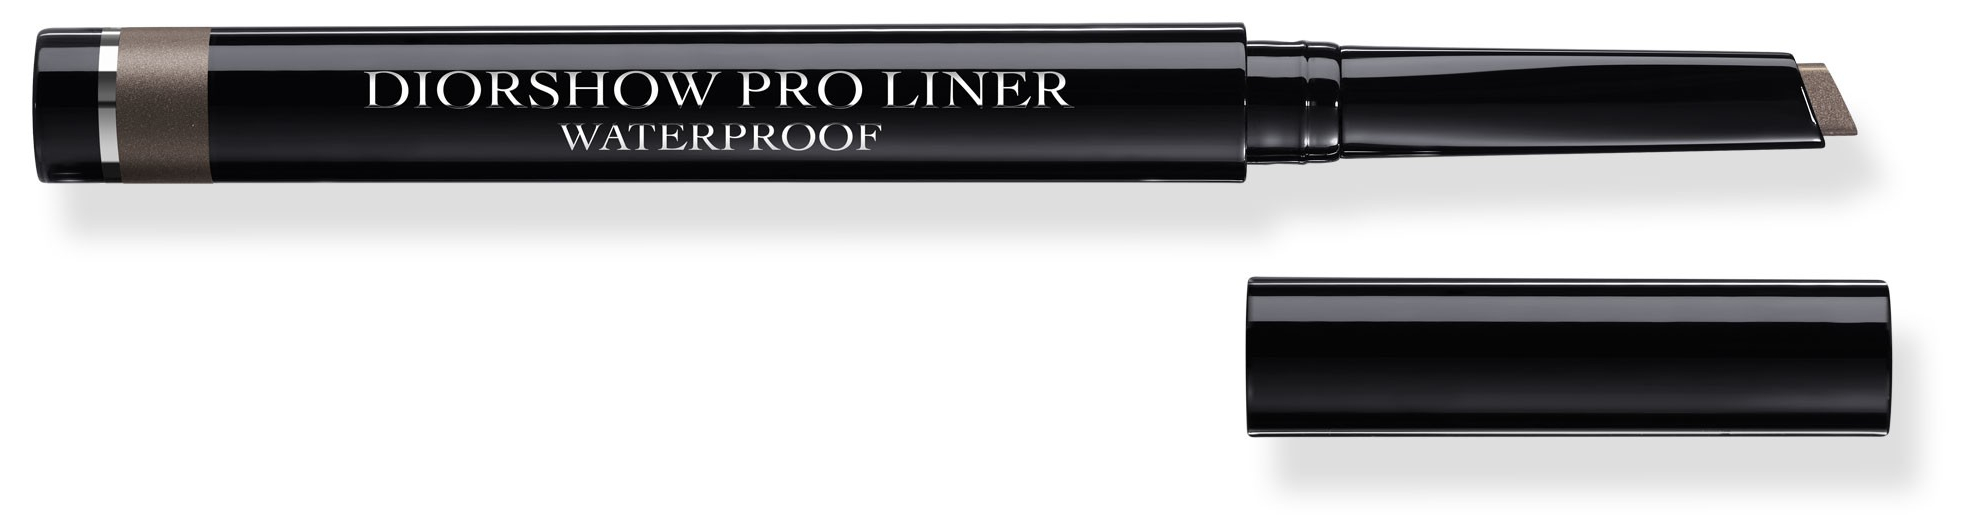 Dior kolekcja Autumn/Fall 2016 Skyline DiorShow Pro Liner Waterproof